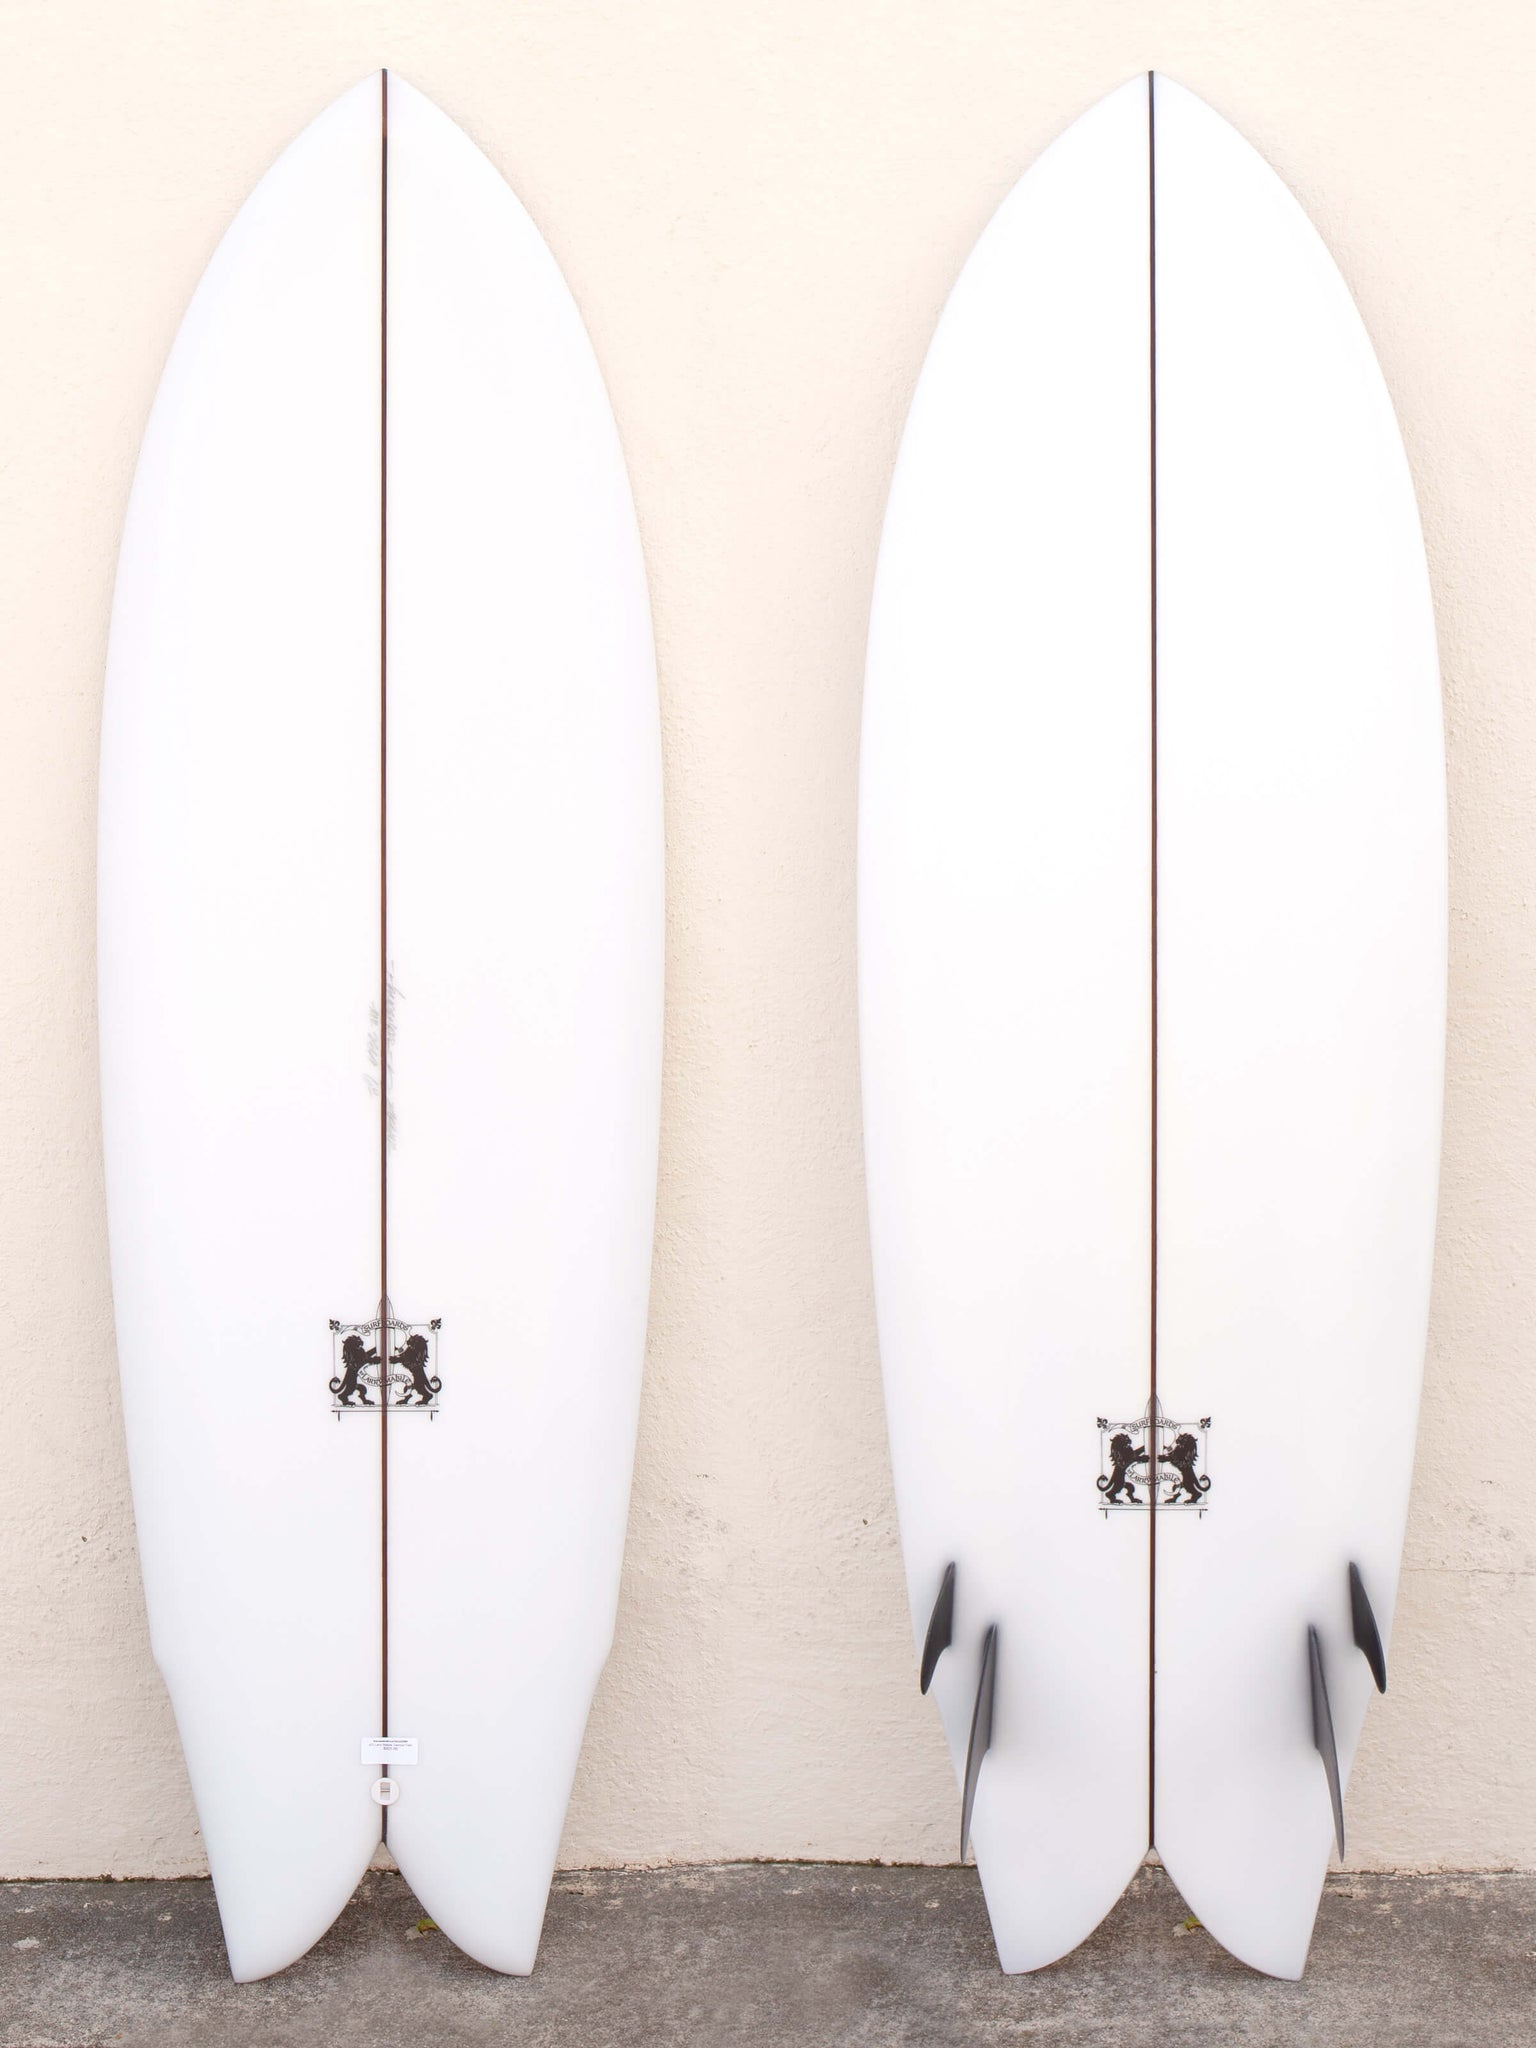 6'0 Mabile Twinzer Fish